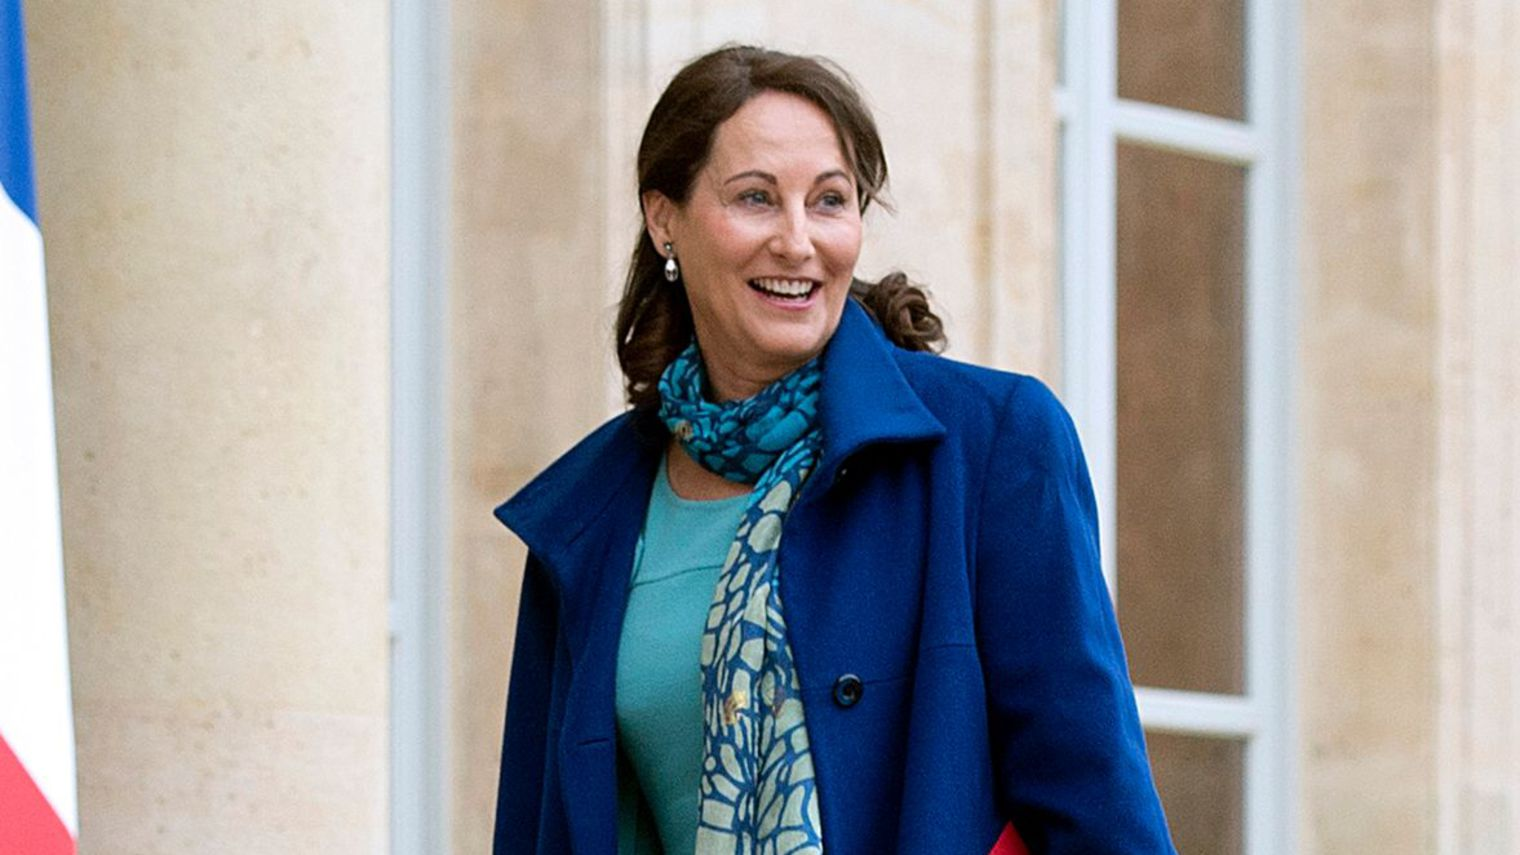 La Cheminee Royale Cheminee Foyer Ouvert Segolene Royal